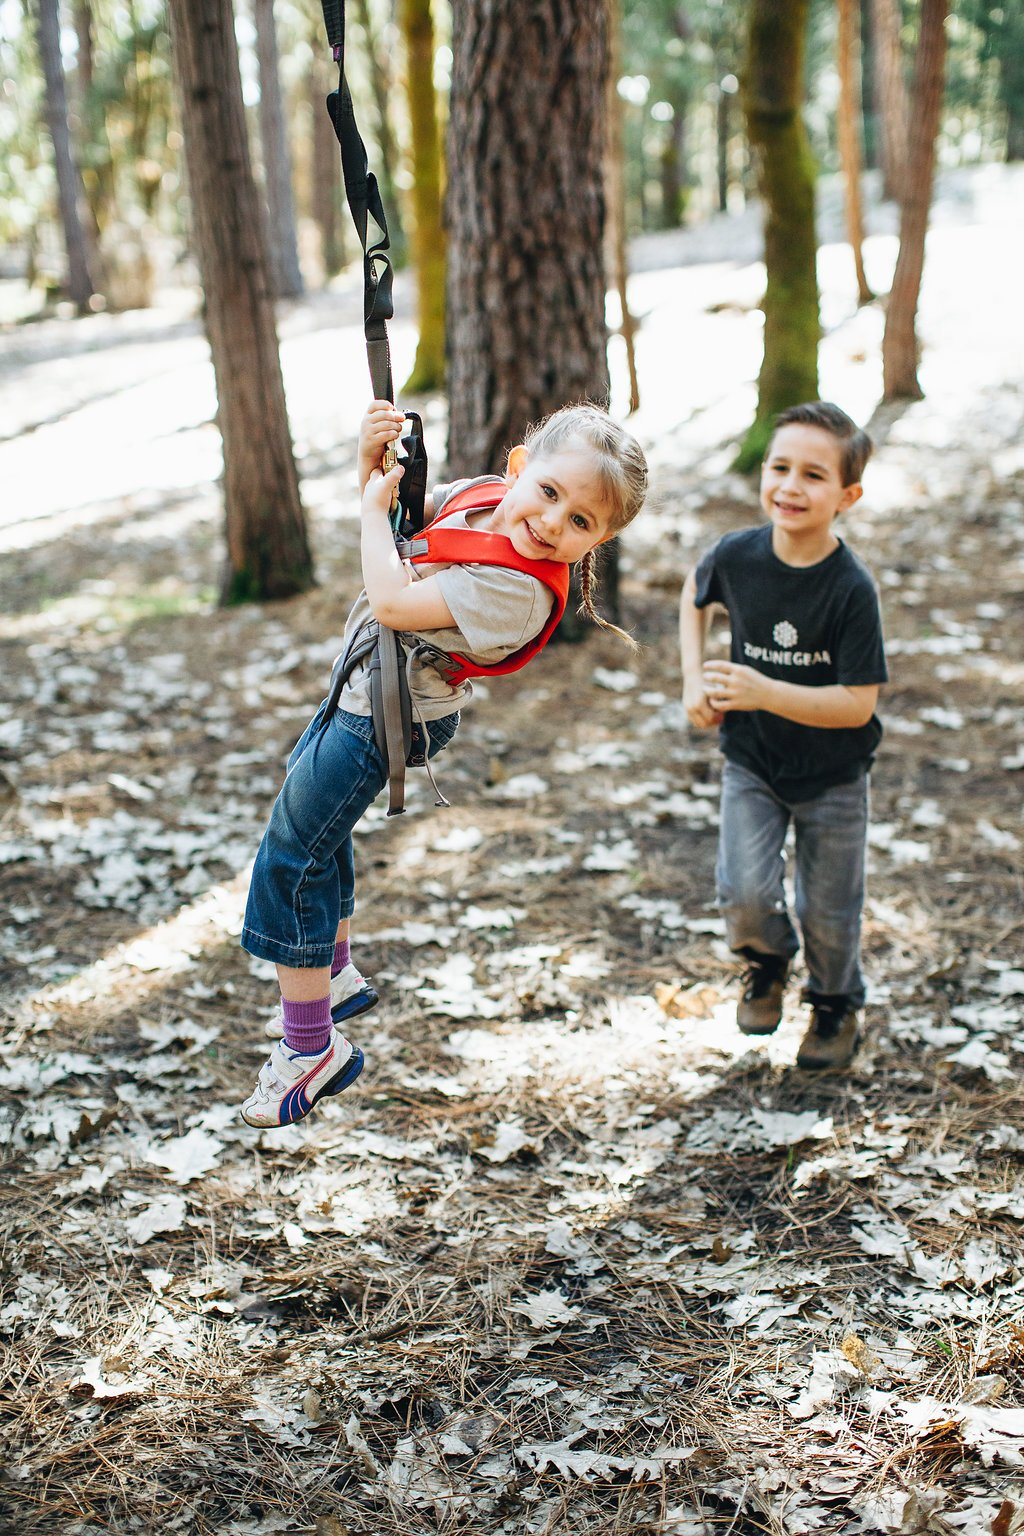 200' CHETCO Zip LINE KIT + Child Harness KIT by Zip Line Gear (Image #4)